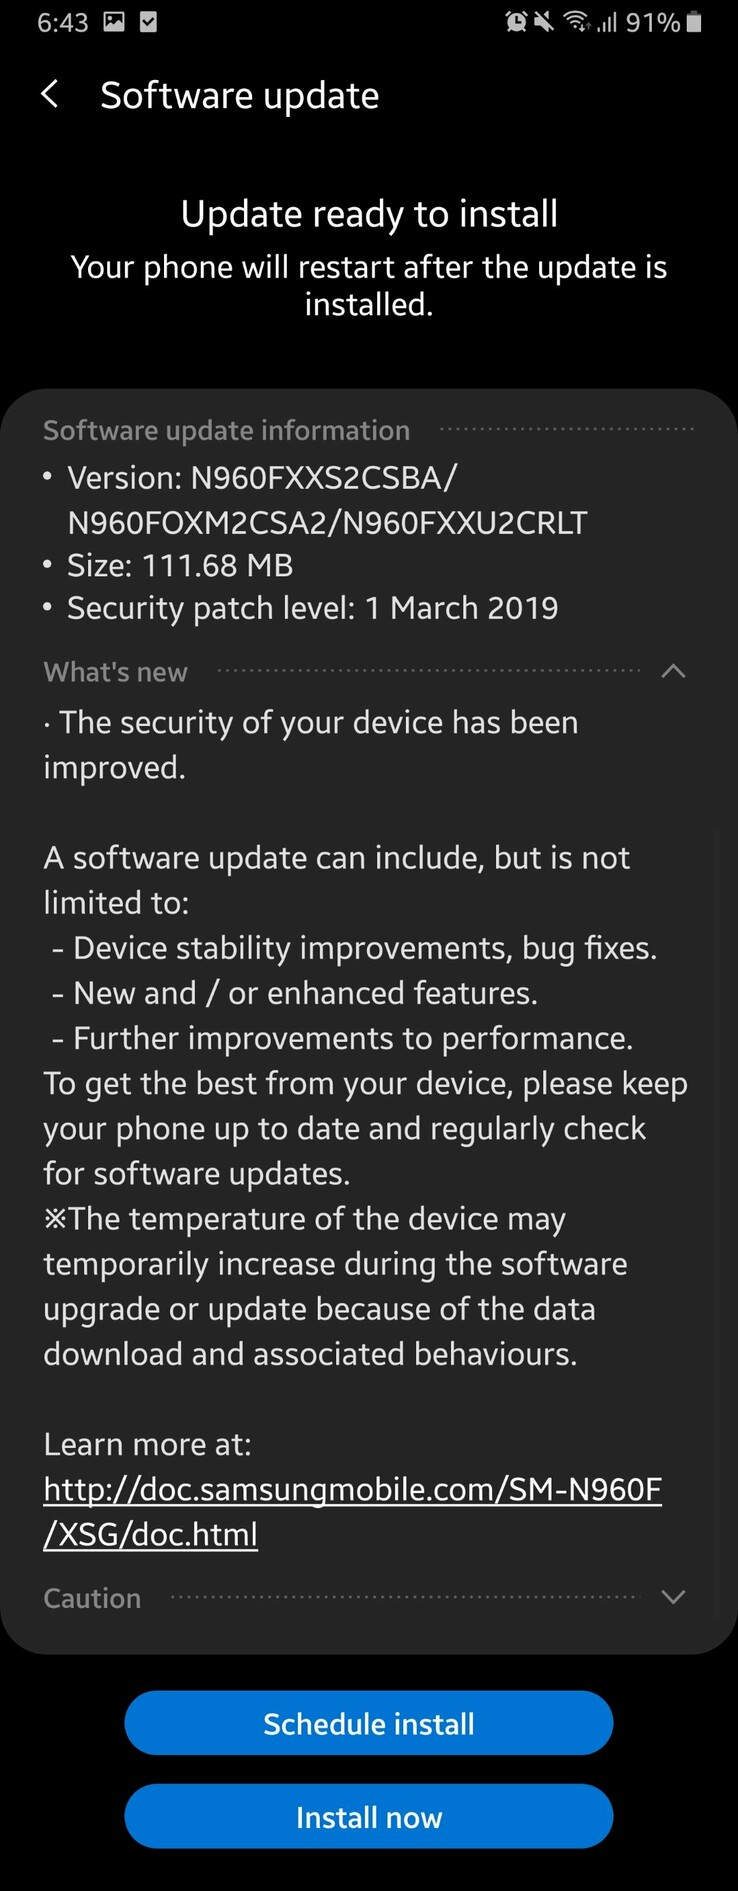 Exynos Note 9 models in the UAE are also receiving the update. (Source: u/gtpower3)